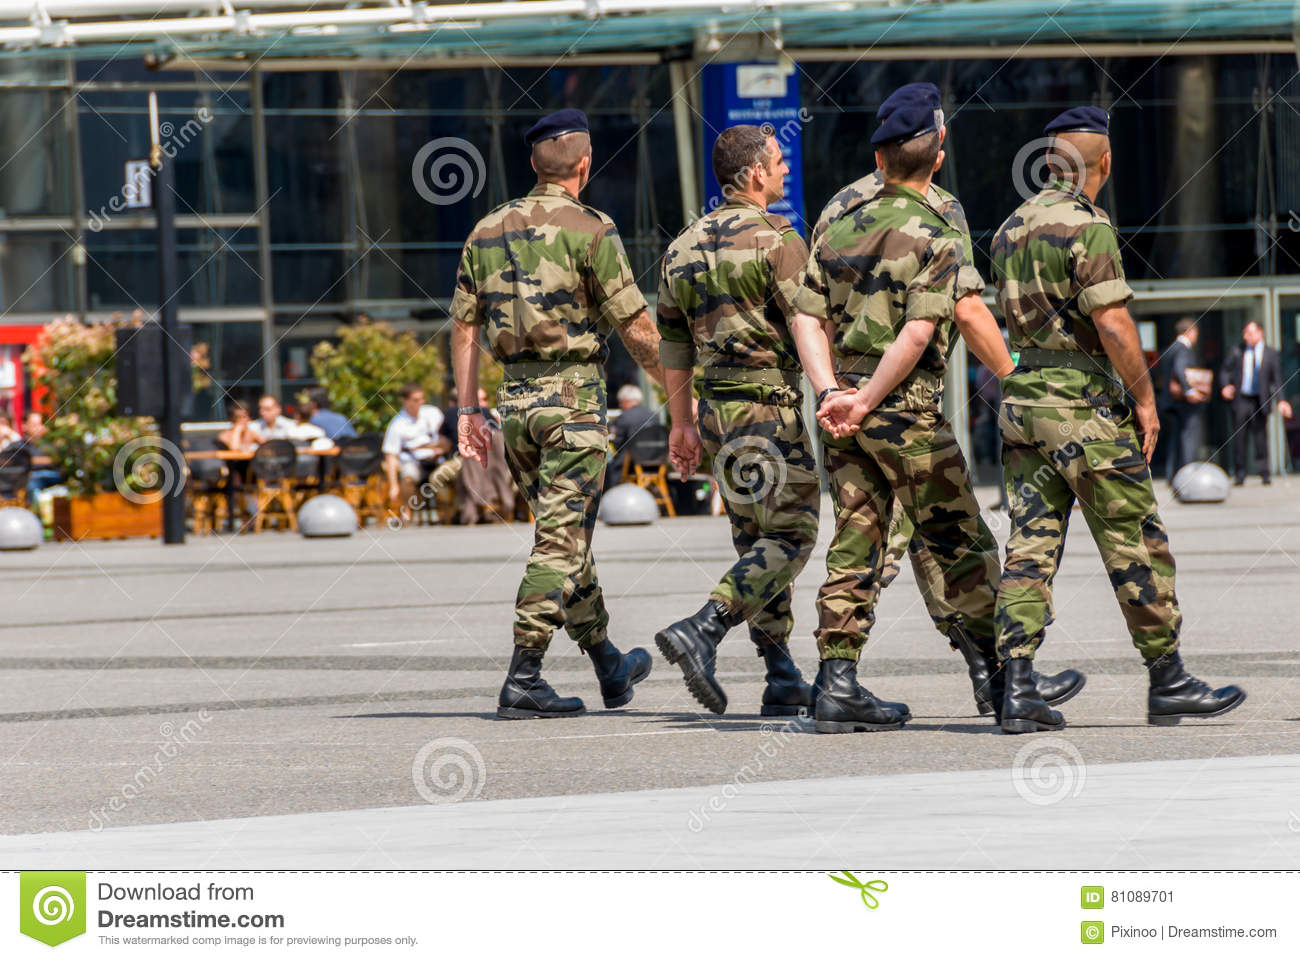 La defense, France - Mai 12, 2007: French military patrol assigned to the surveillance of a business district near Paris. These tr